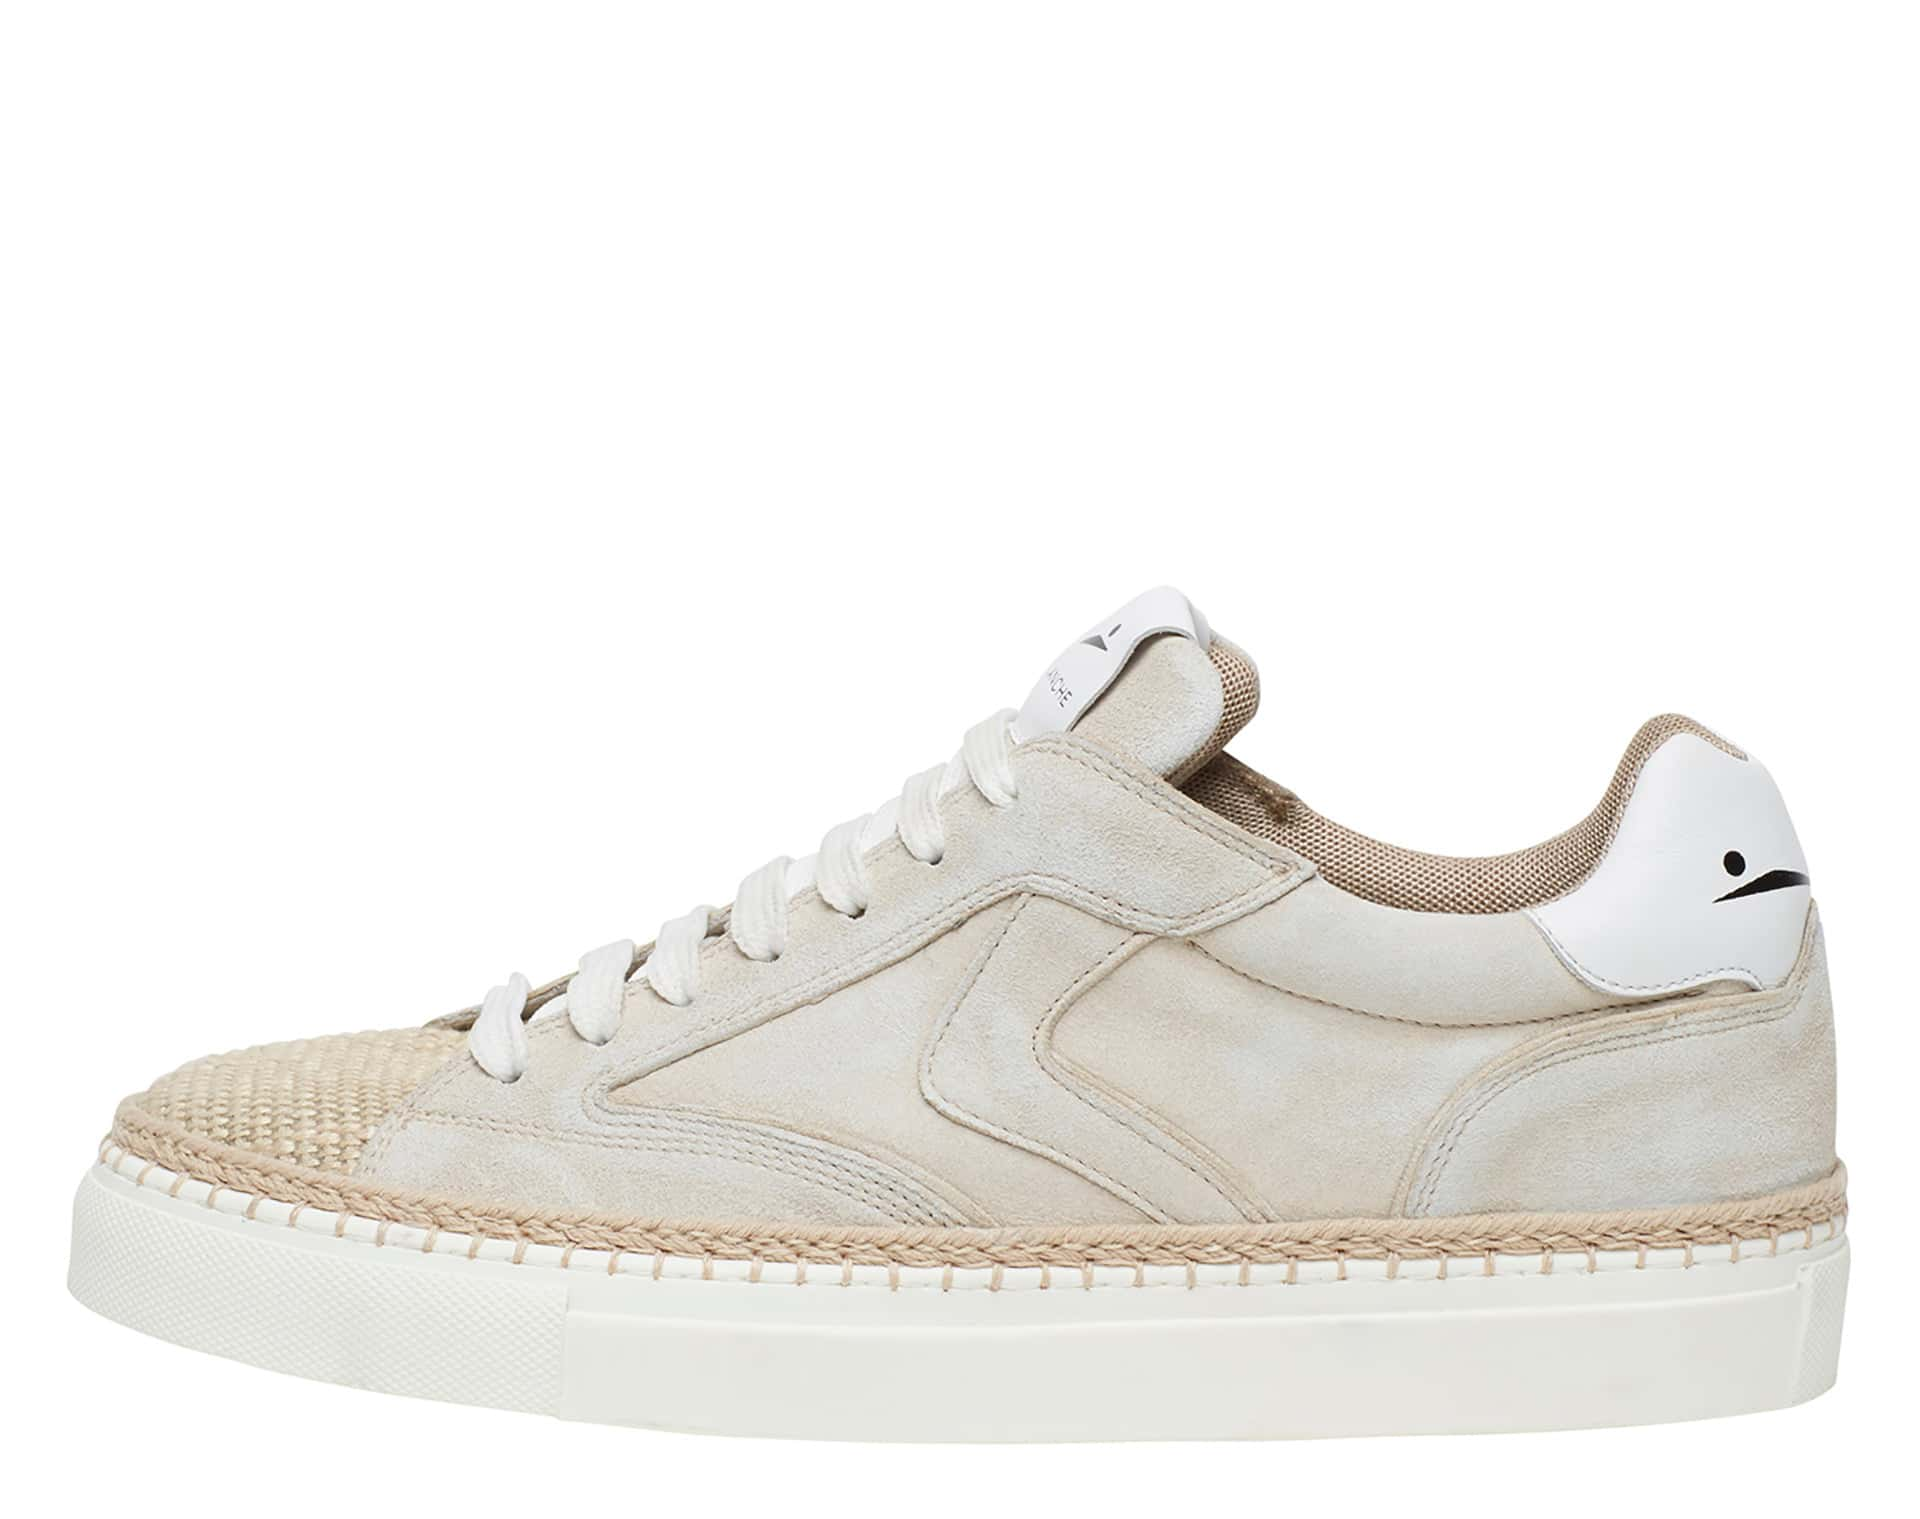 NEW ISCHIA - Leather and rope sneakers - Powder pink